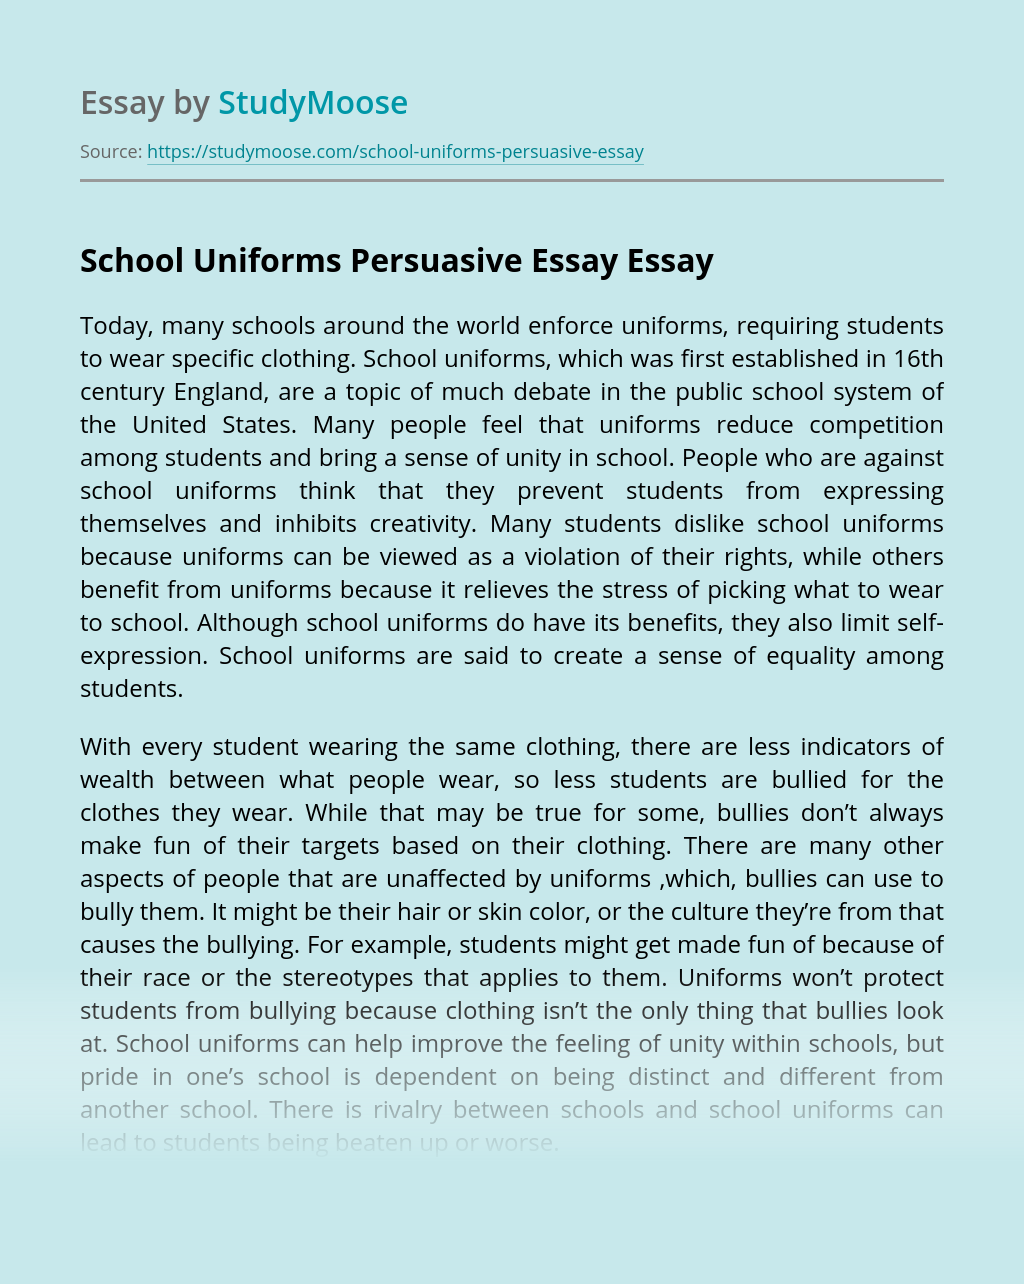 School Uniforms Persuasive Essay